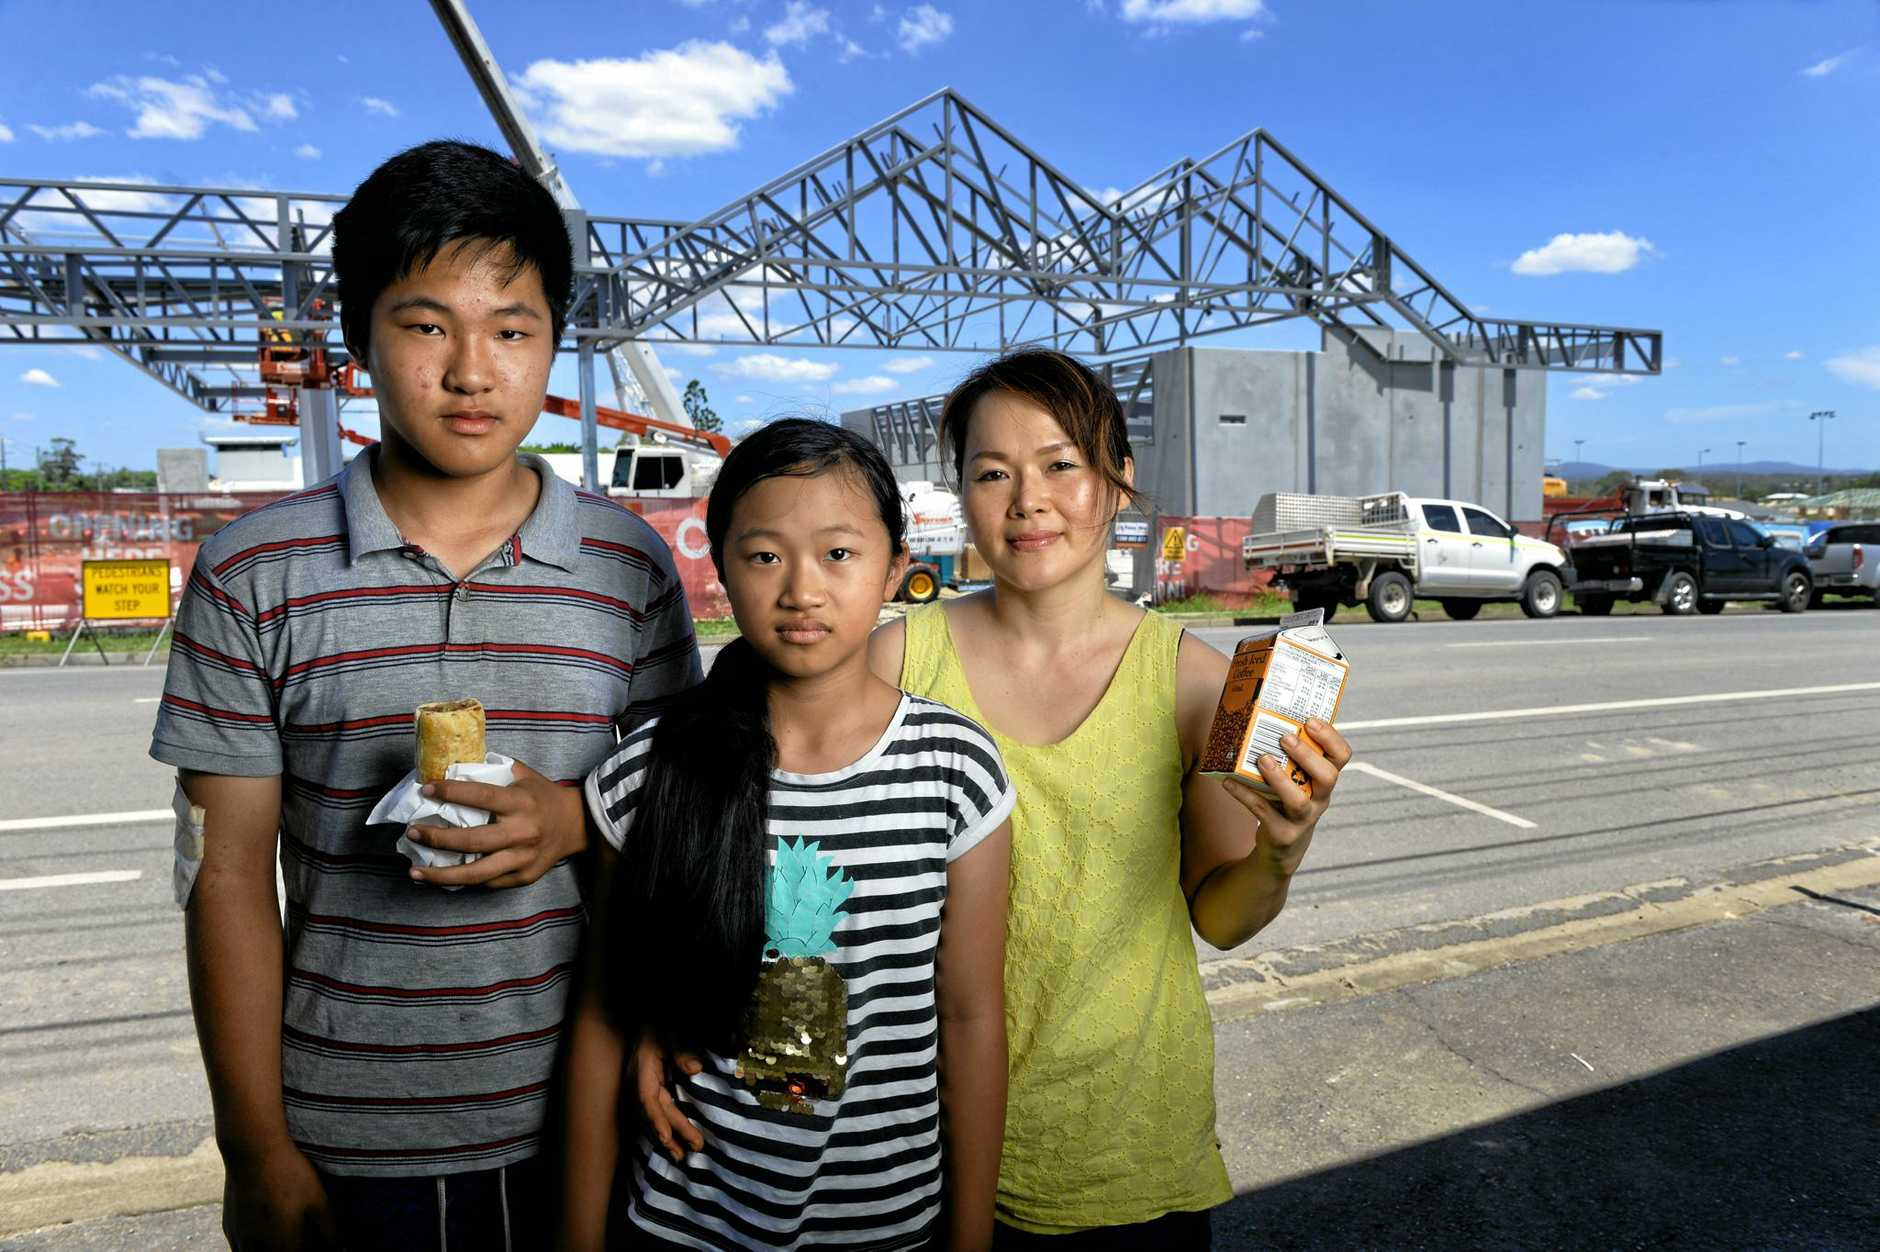 Johnny and Julie Nguyen and Tuyet Huynh from the Hot Bread Bin on Grange Road are concerned about how the development on the old Bremer High School site will affect their business.